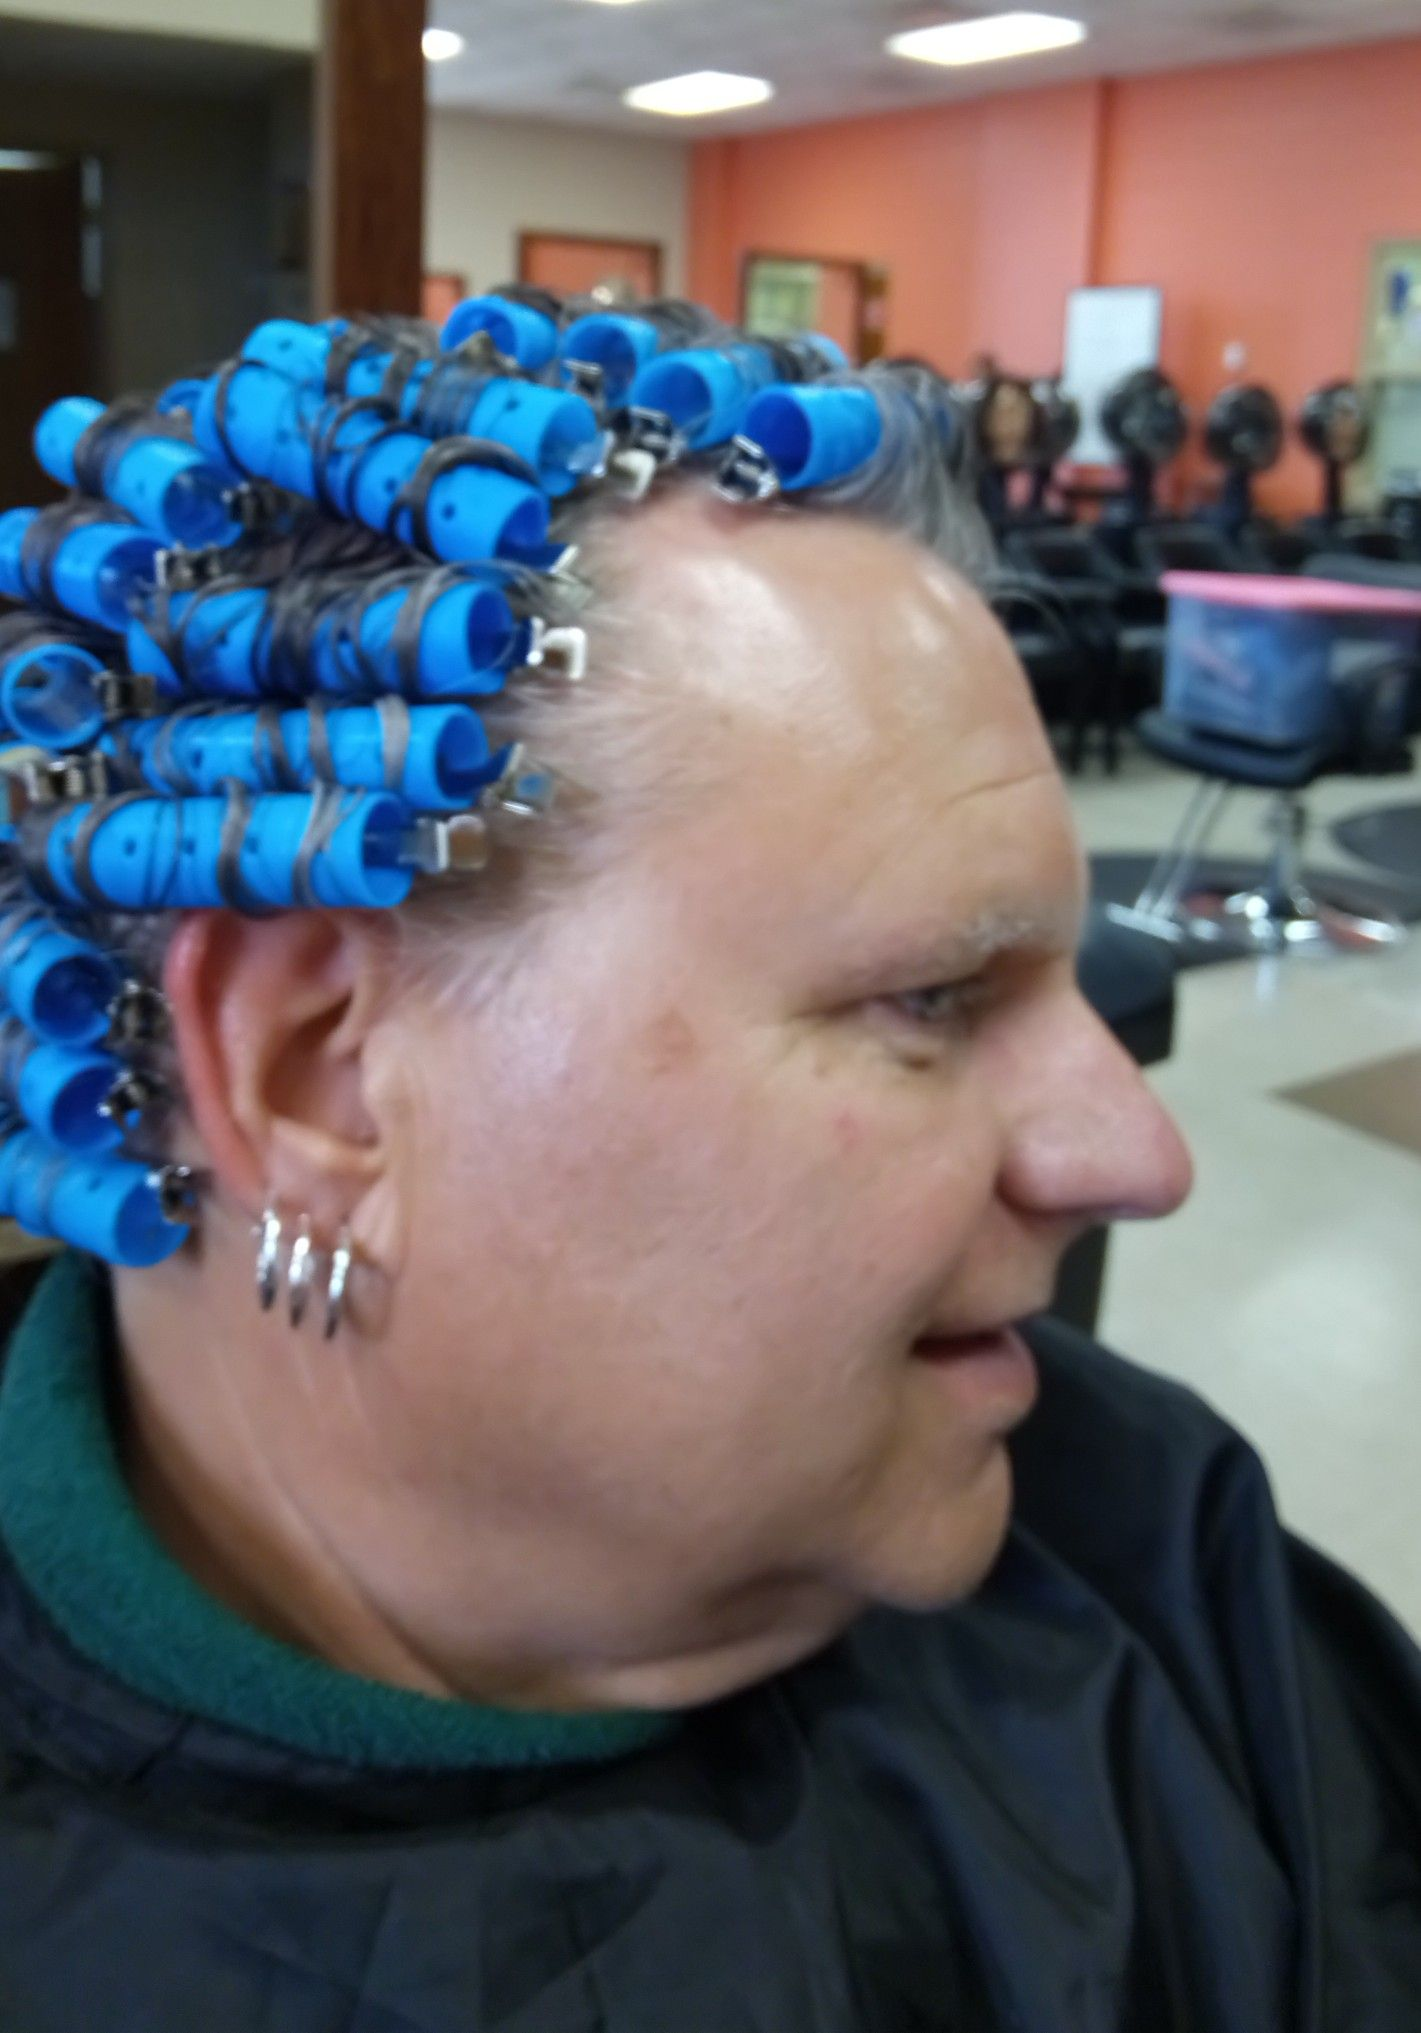 sissy boy in hair rollers pin on beauty salon curlers